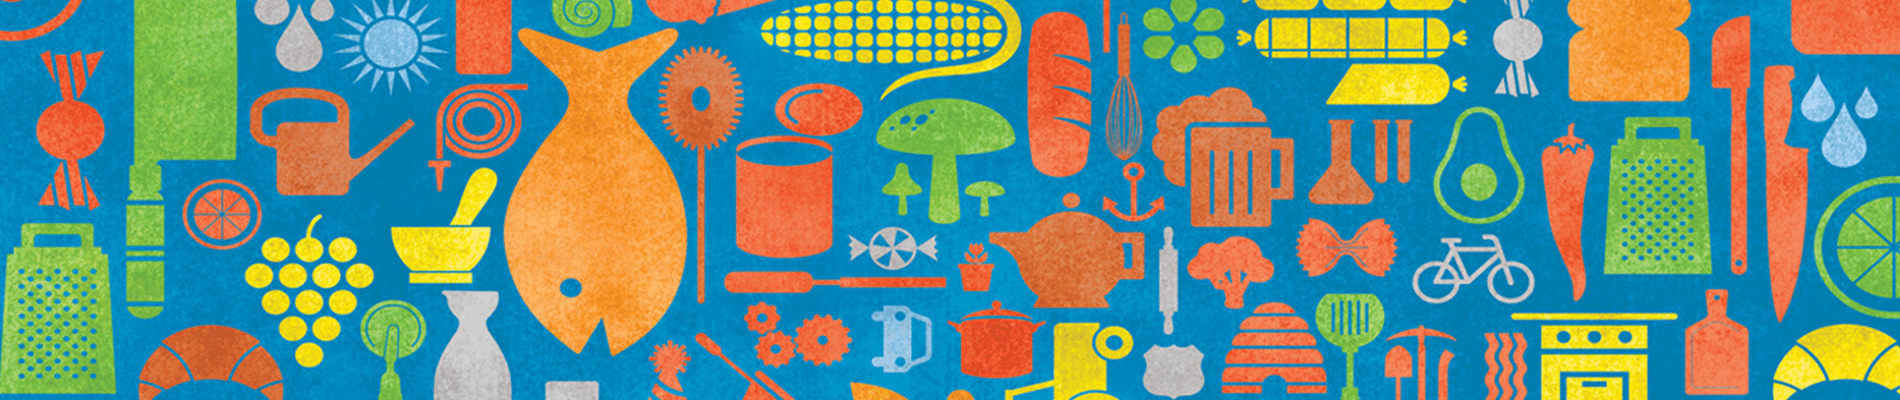 Food: Our Global Kitchen